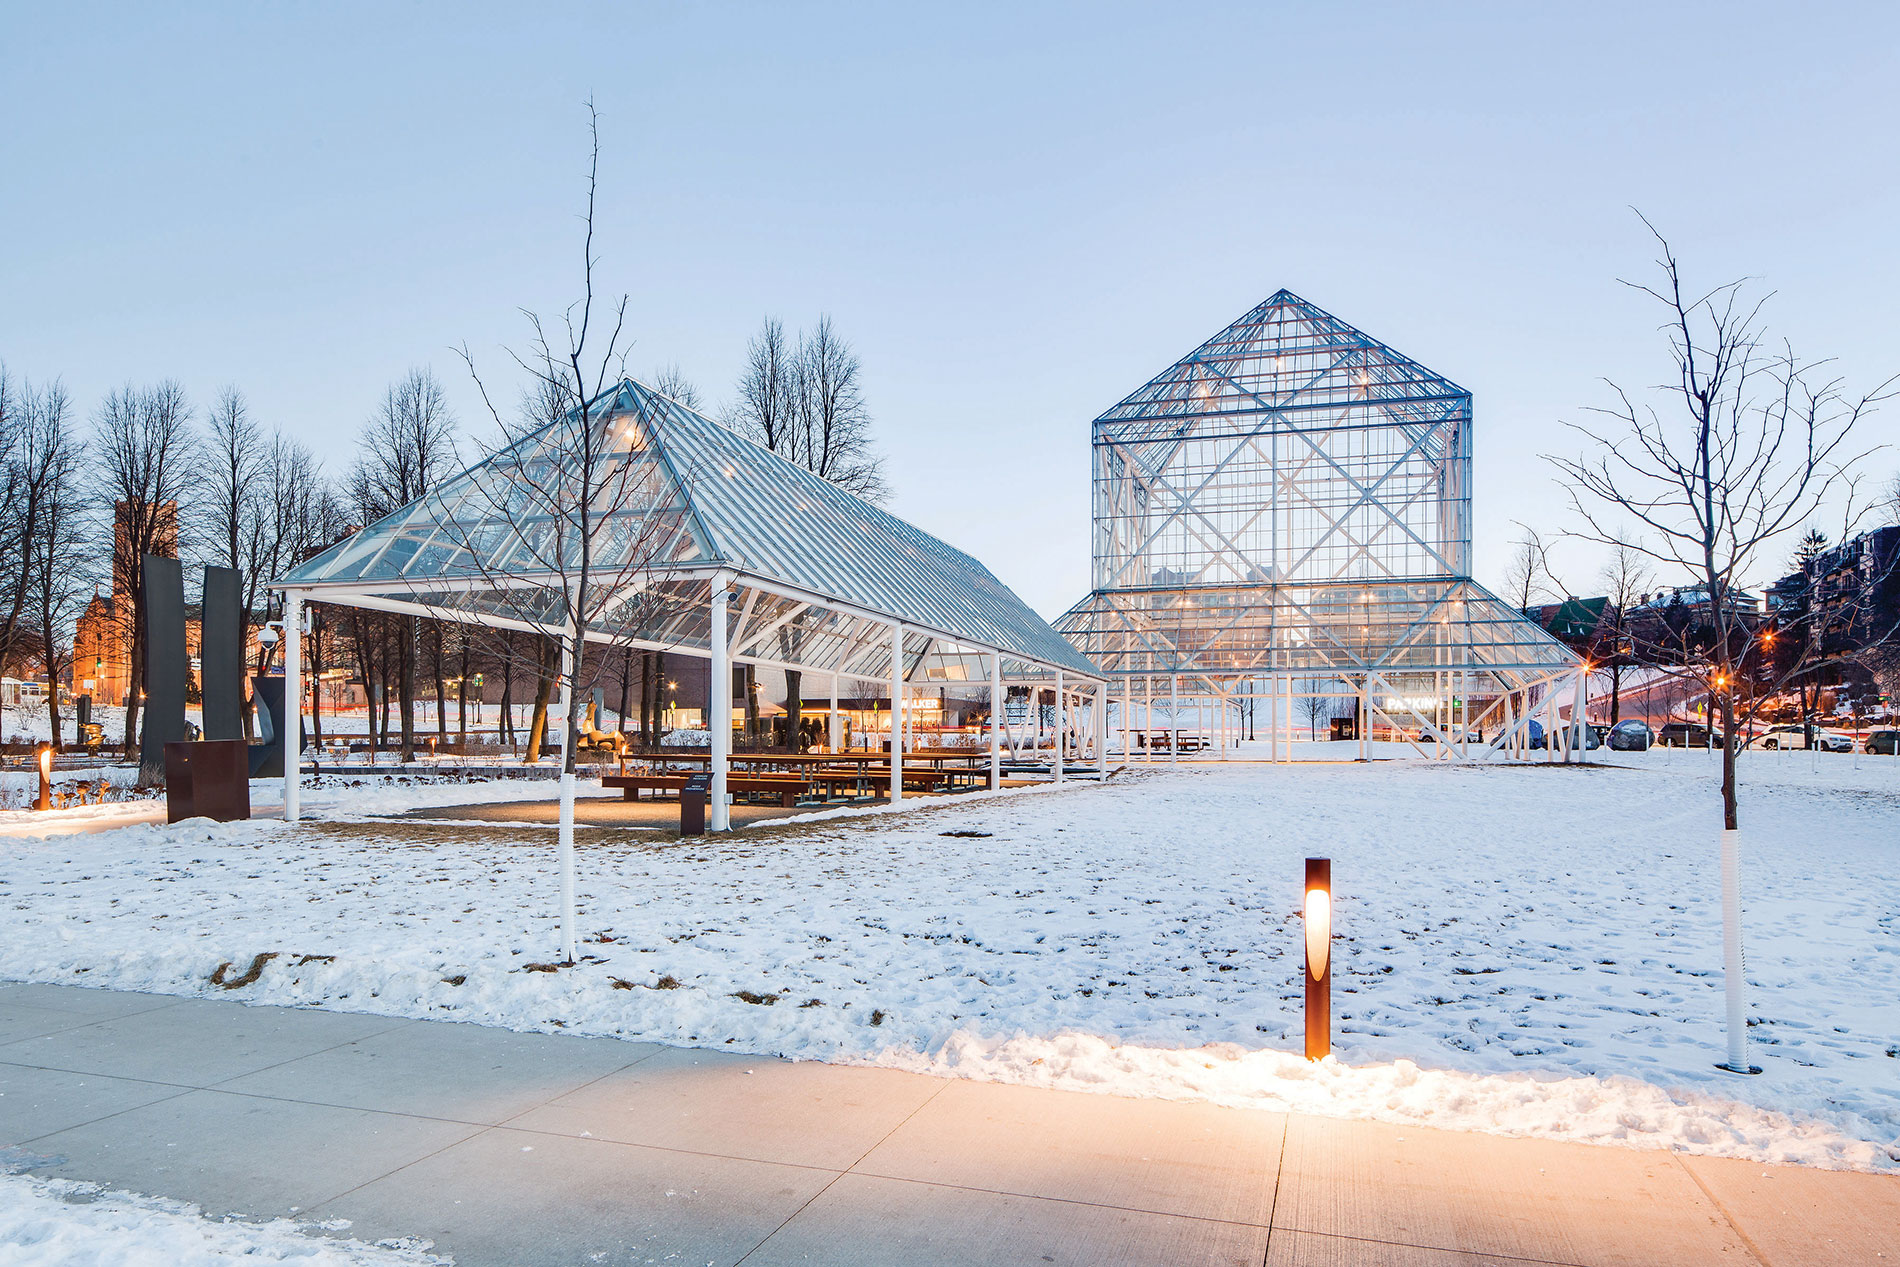 When the enclosed Cowles Conservatory was replaced by the open Cowles Pavillion, OlympiaTech removed most of the existing lighting and installed an LED-based system. Photo credit: Lindsay Cajune-Duffy of Lindsay Nicole Photography